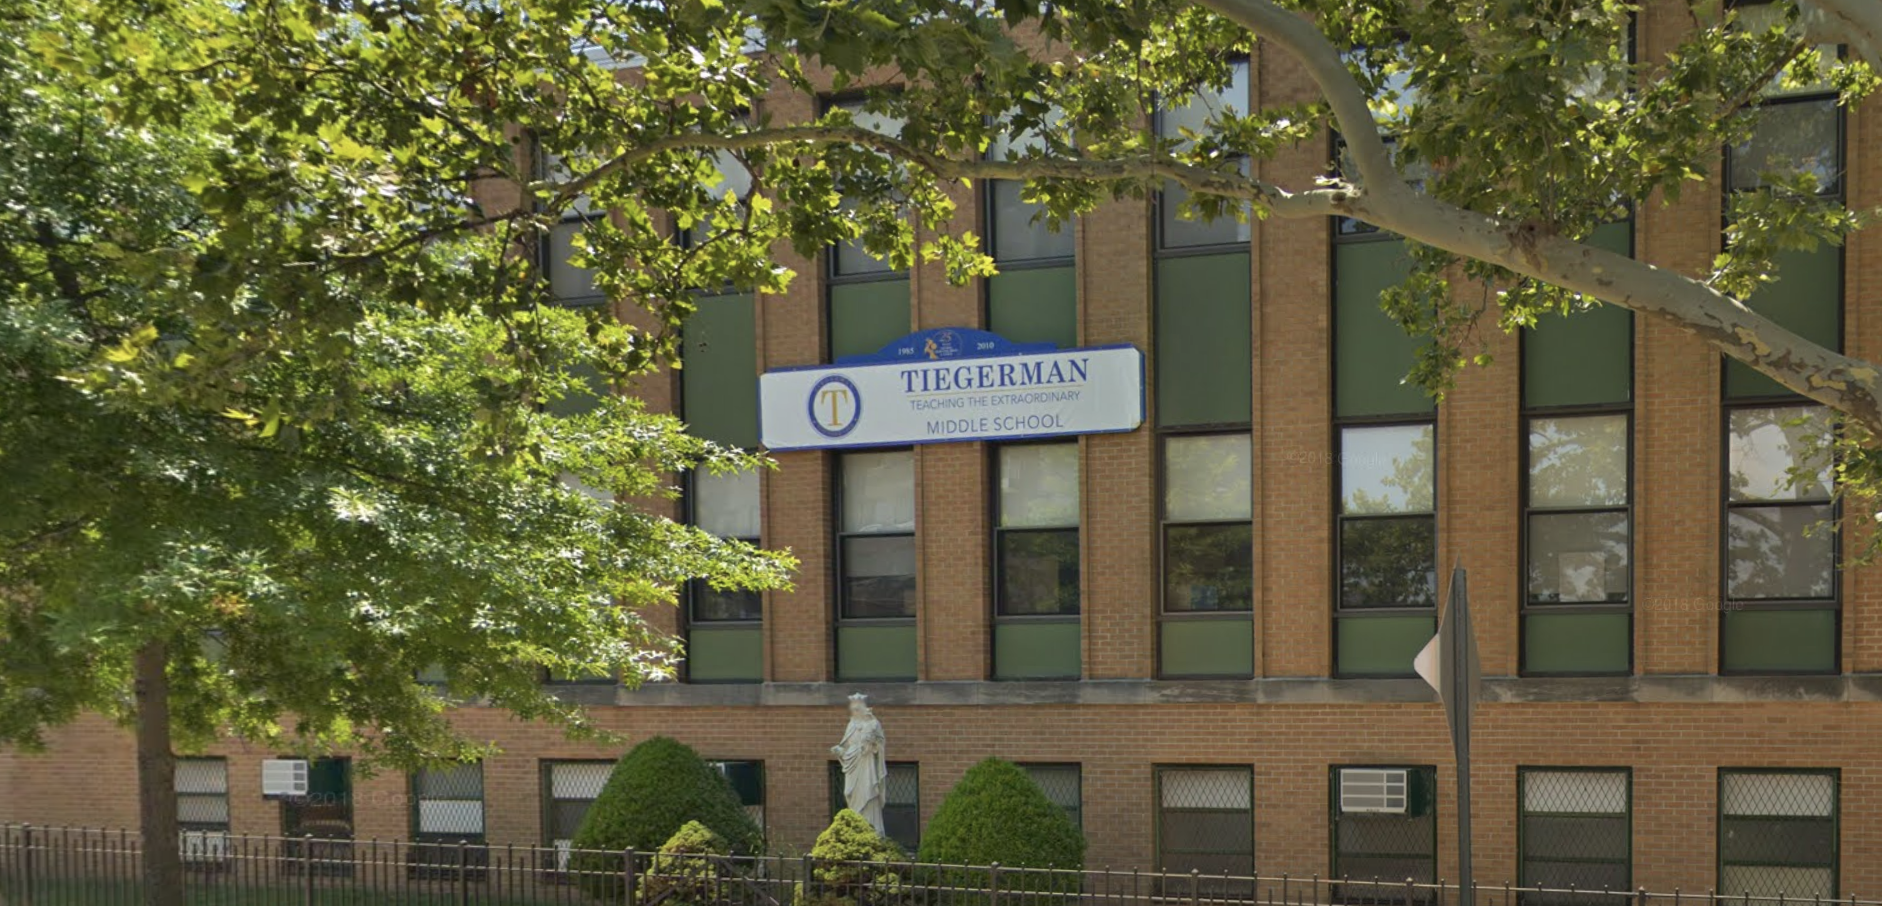 Tiegerman Middle School in Woodside will relocate to Glen Cove. Photo via Google Maps.